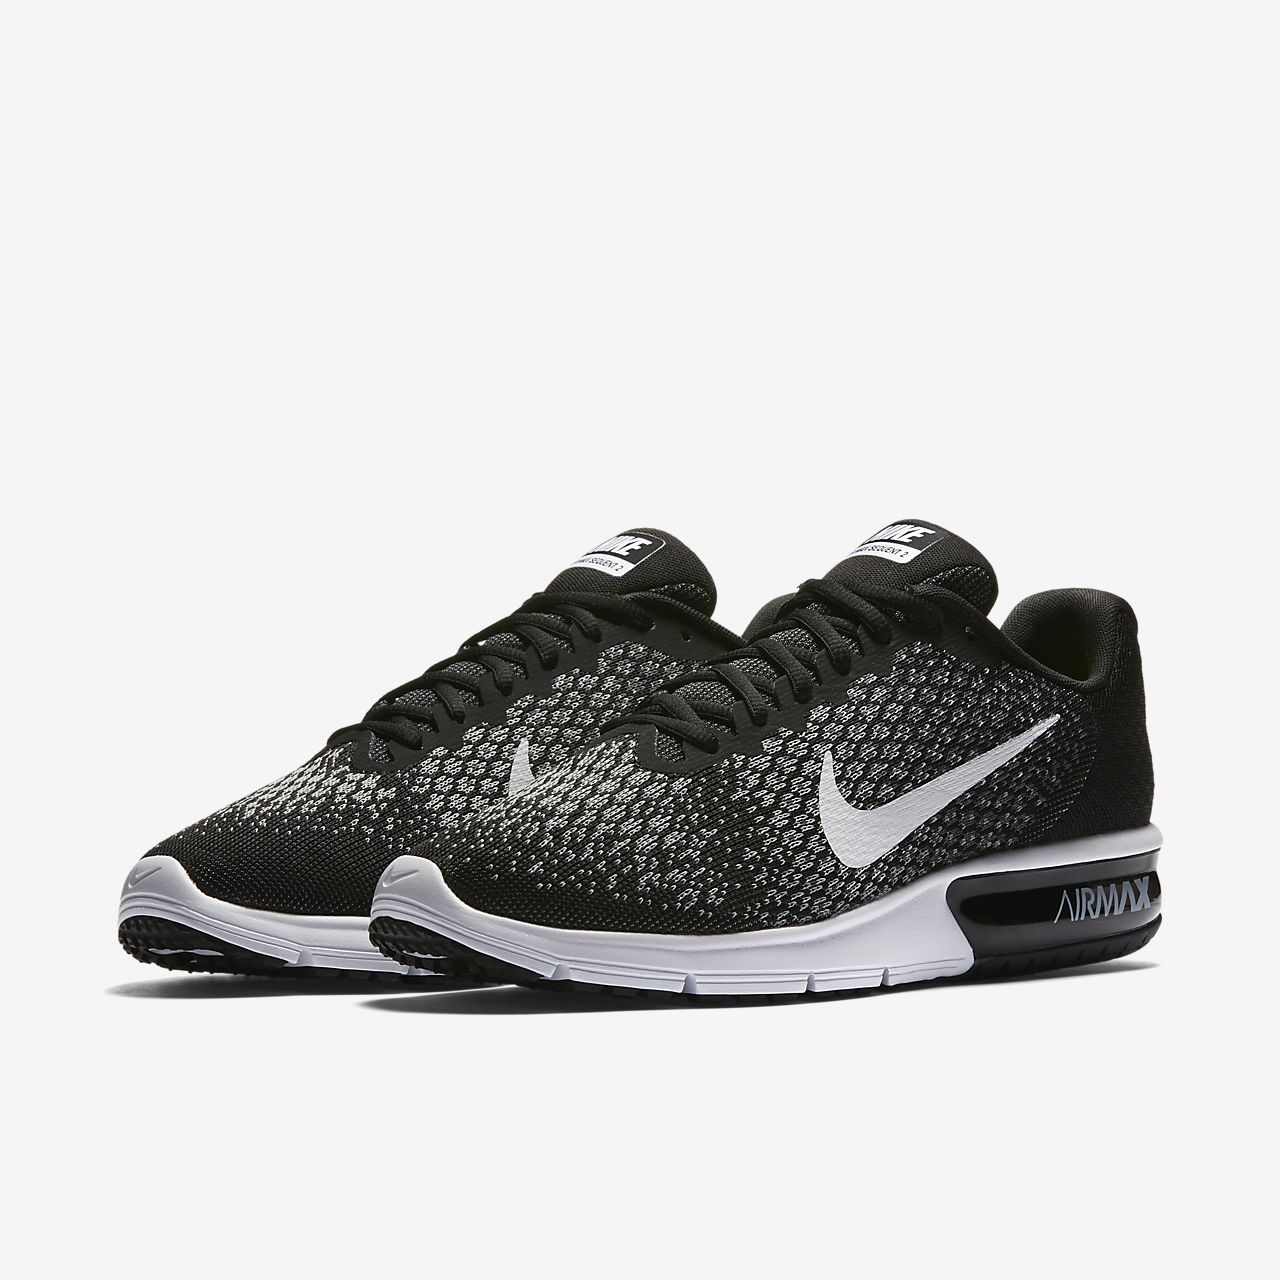 Nike Air Max Sequent 2 Girls Running Shoes Black/Grey sD7844X